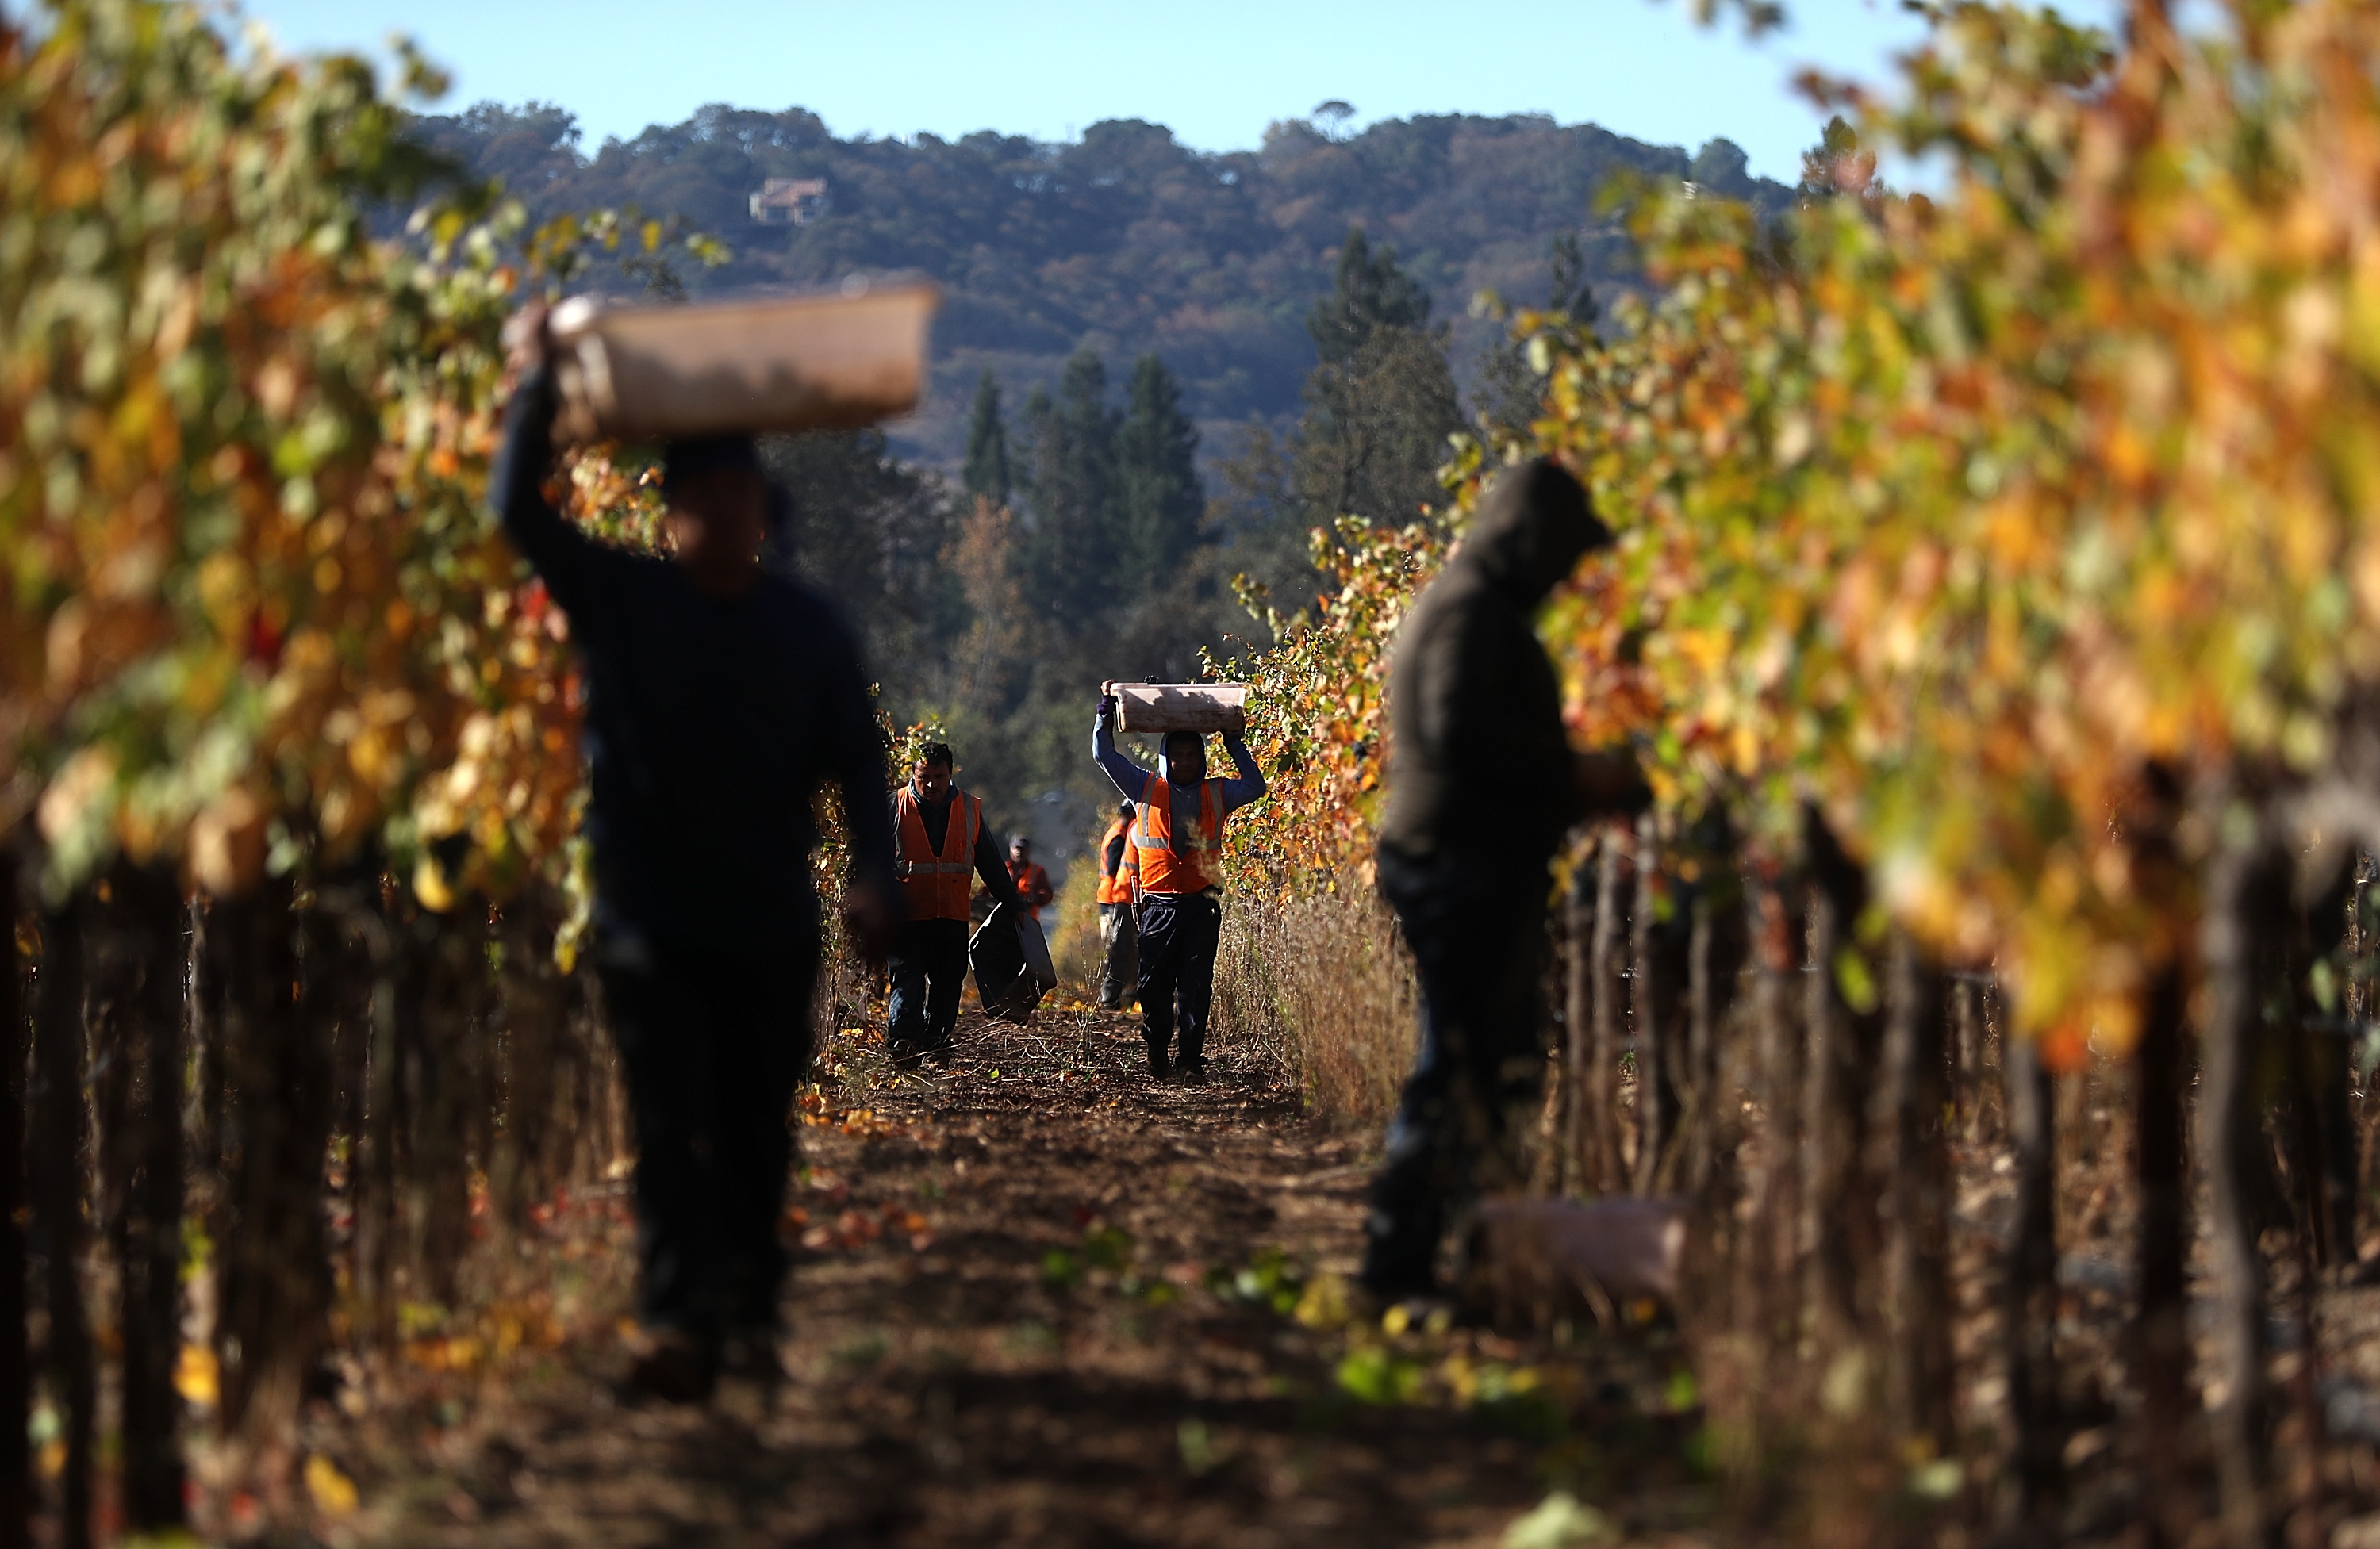 Sonoma County Winery Harvests Grapes Late In Season, After Being Delayed By Devastating Wildfires In Region